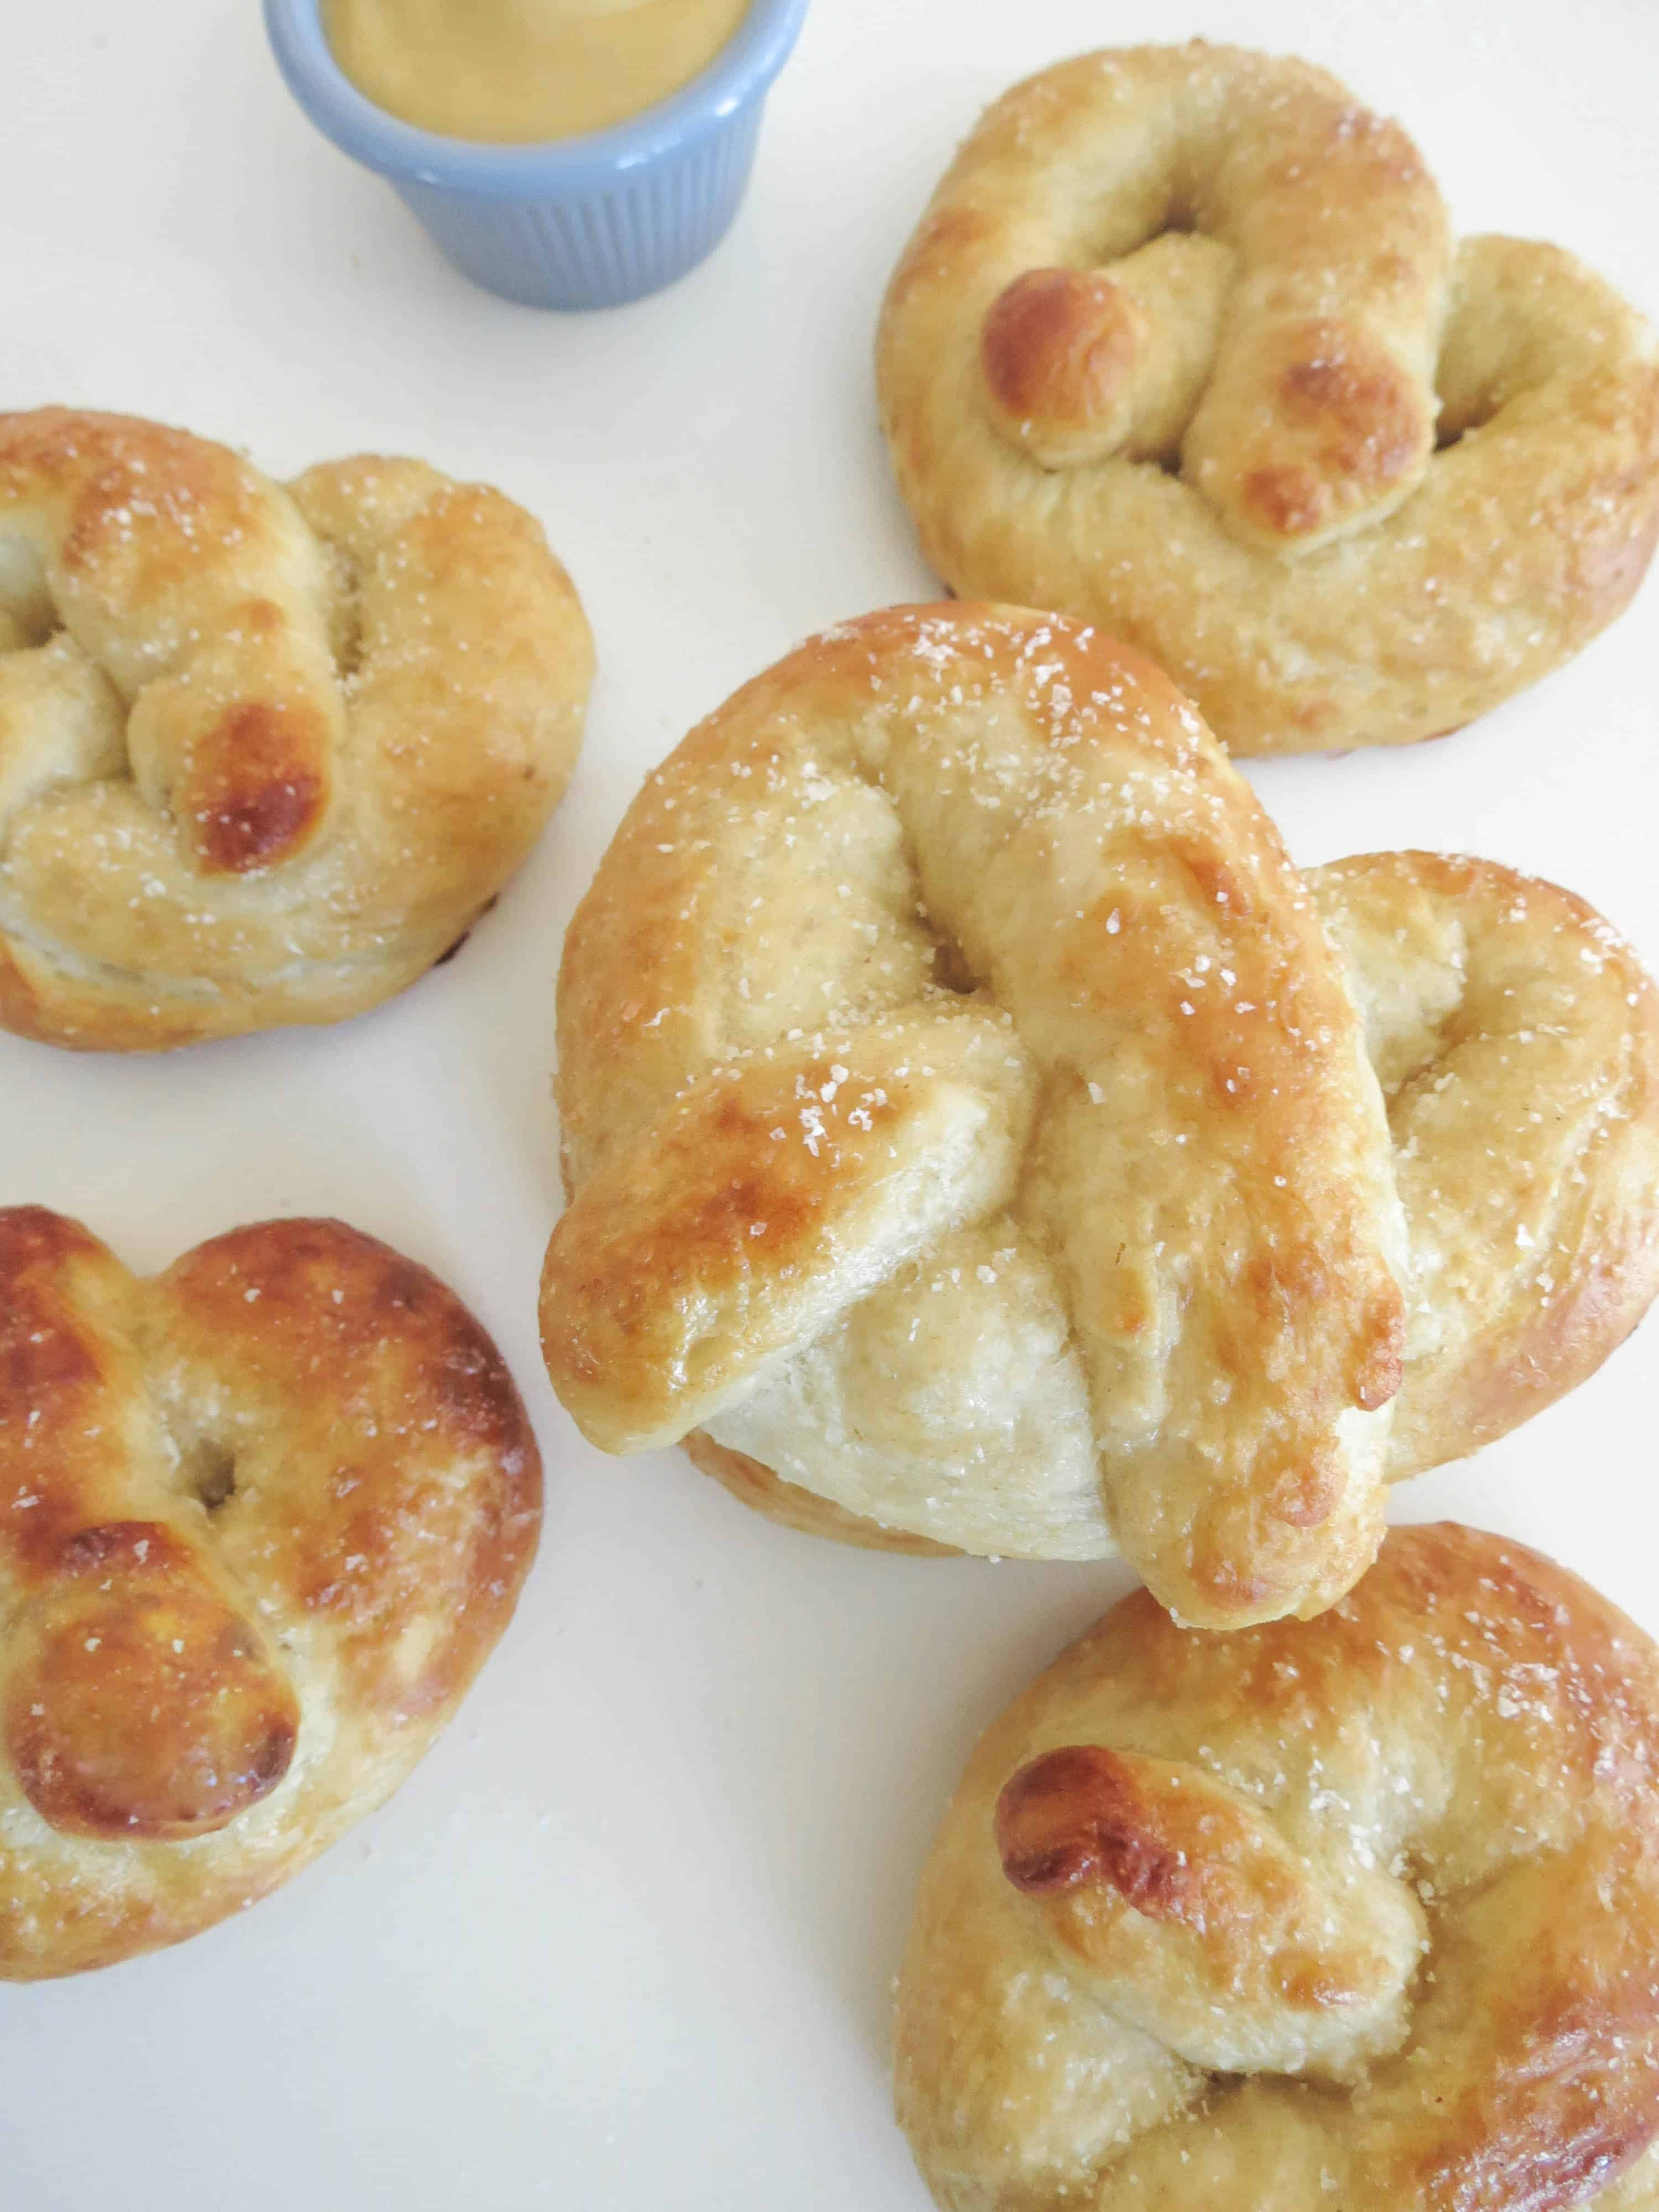 You get a soft and fluffy yet chewy, perfectly golden brown pretzel ...